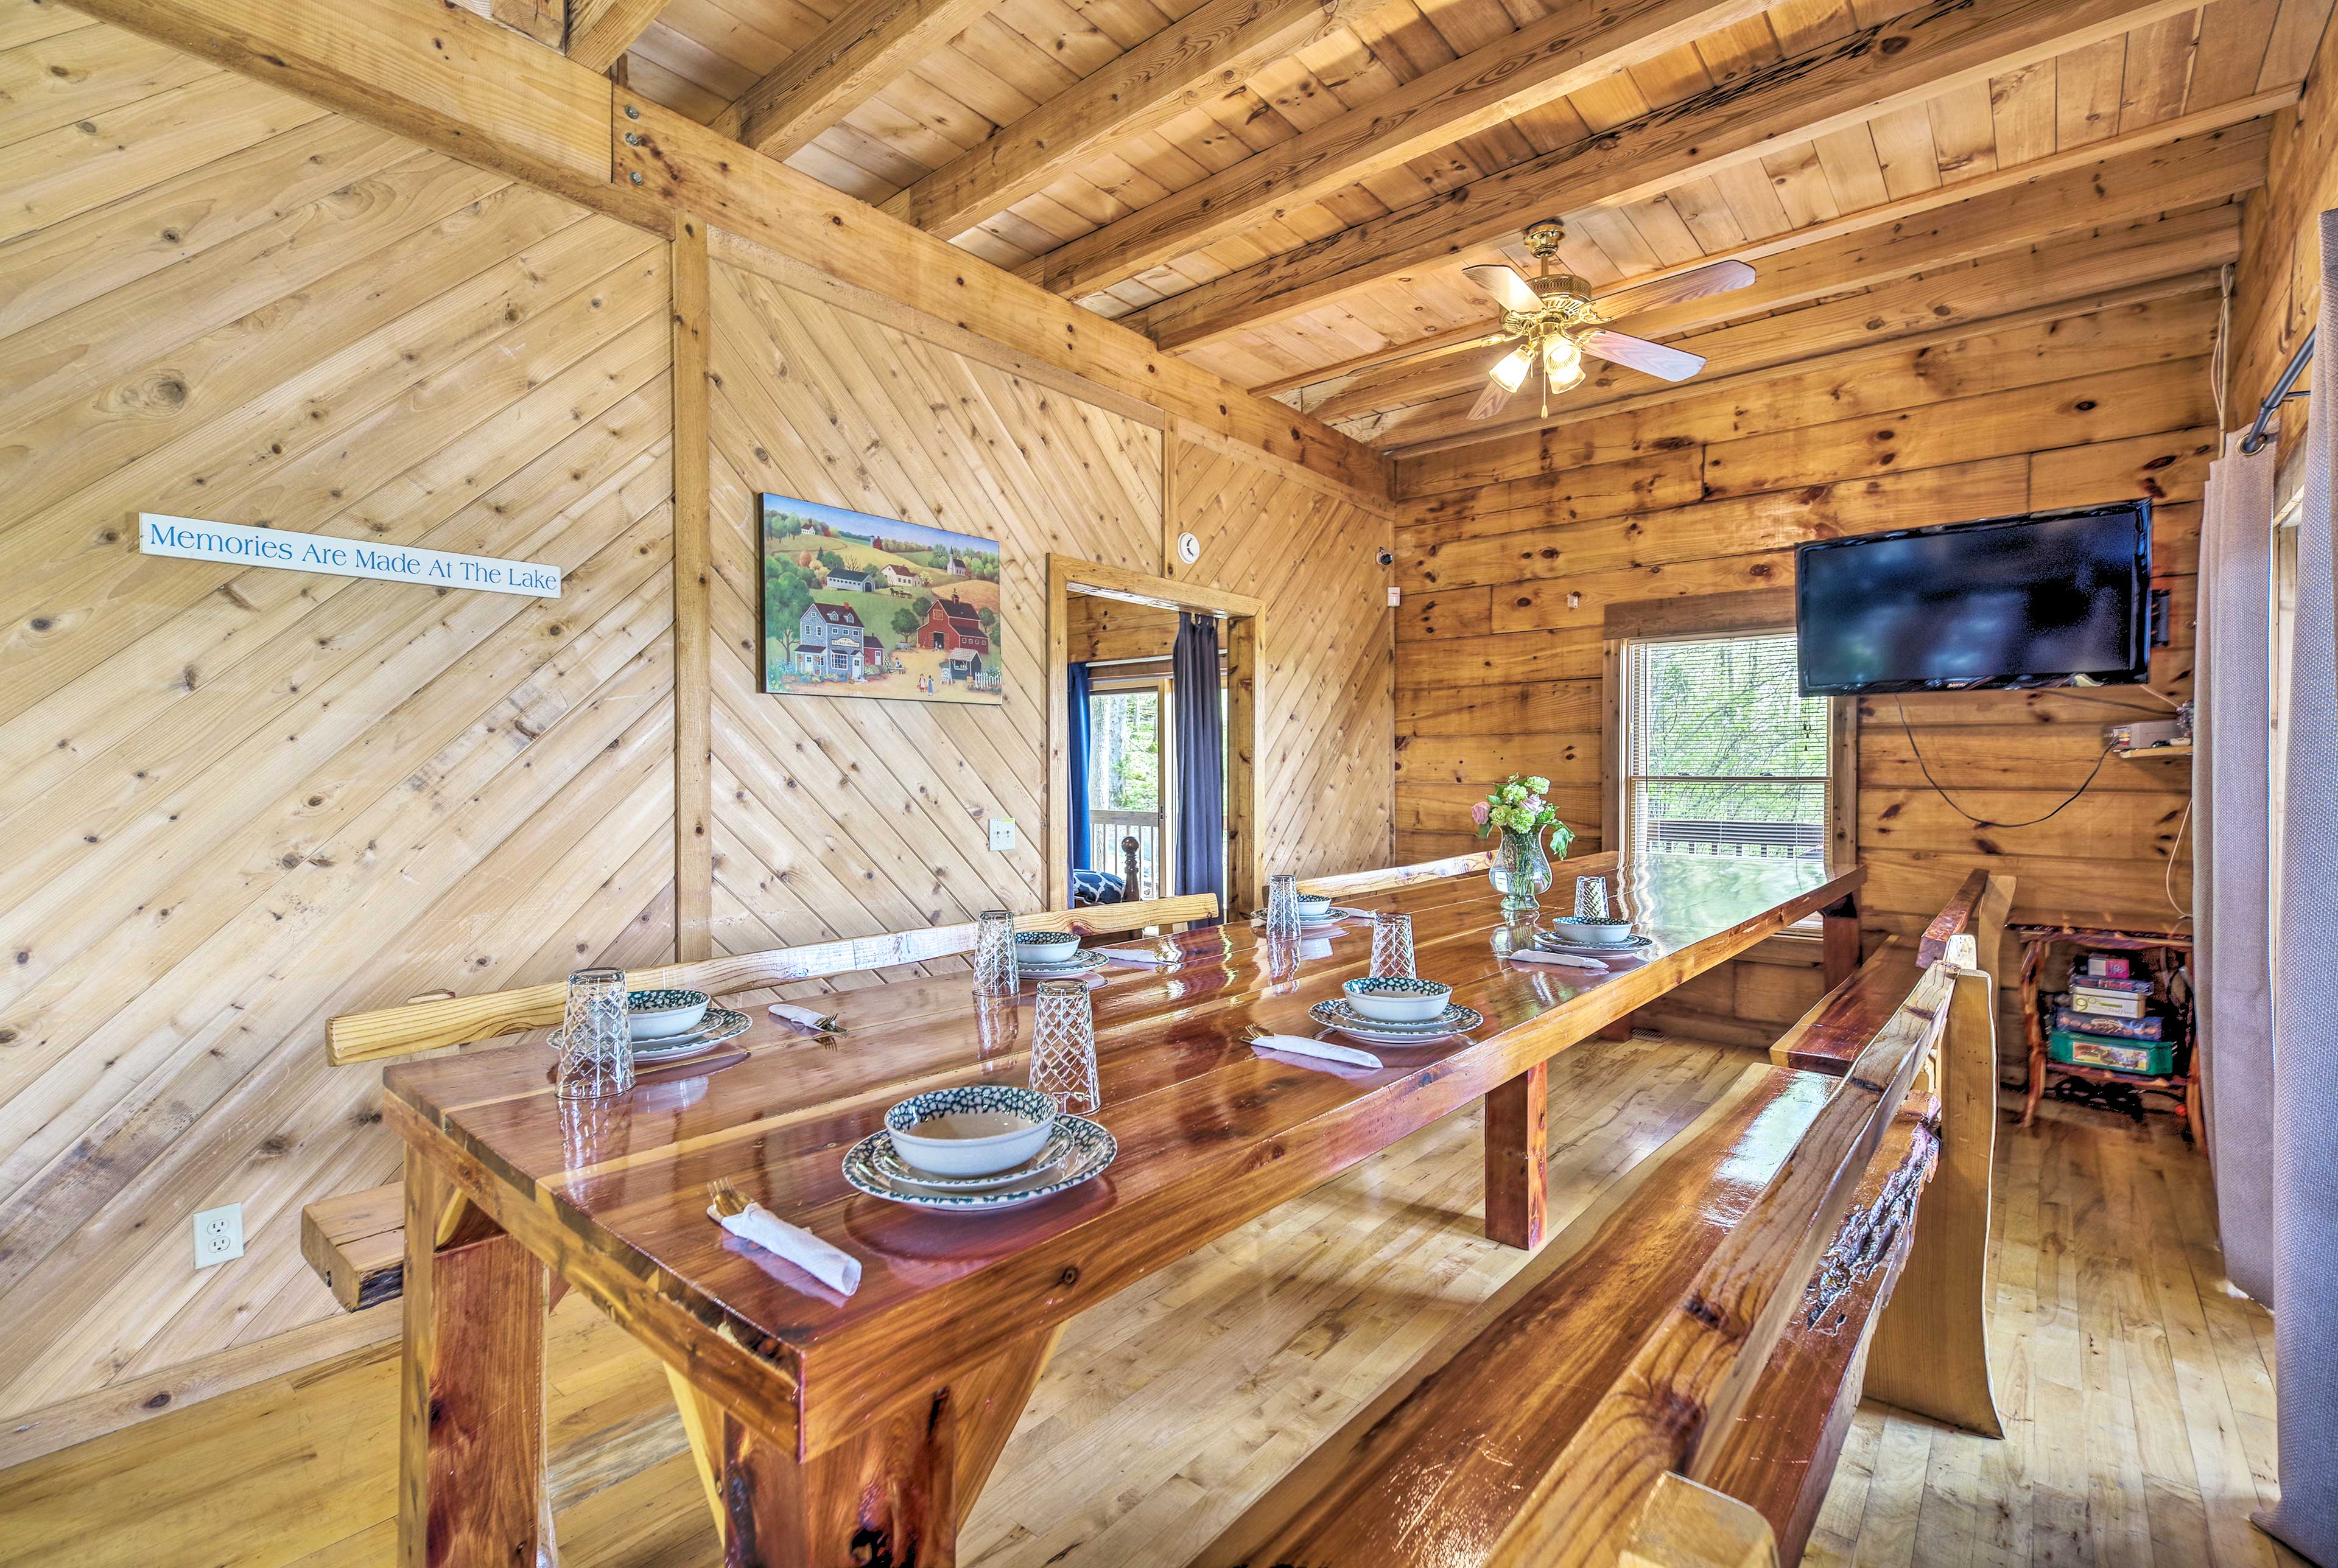 Gather around the large dining table to enjoy family feasts.